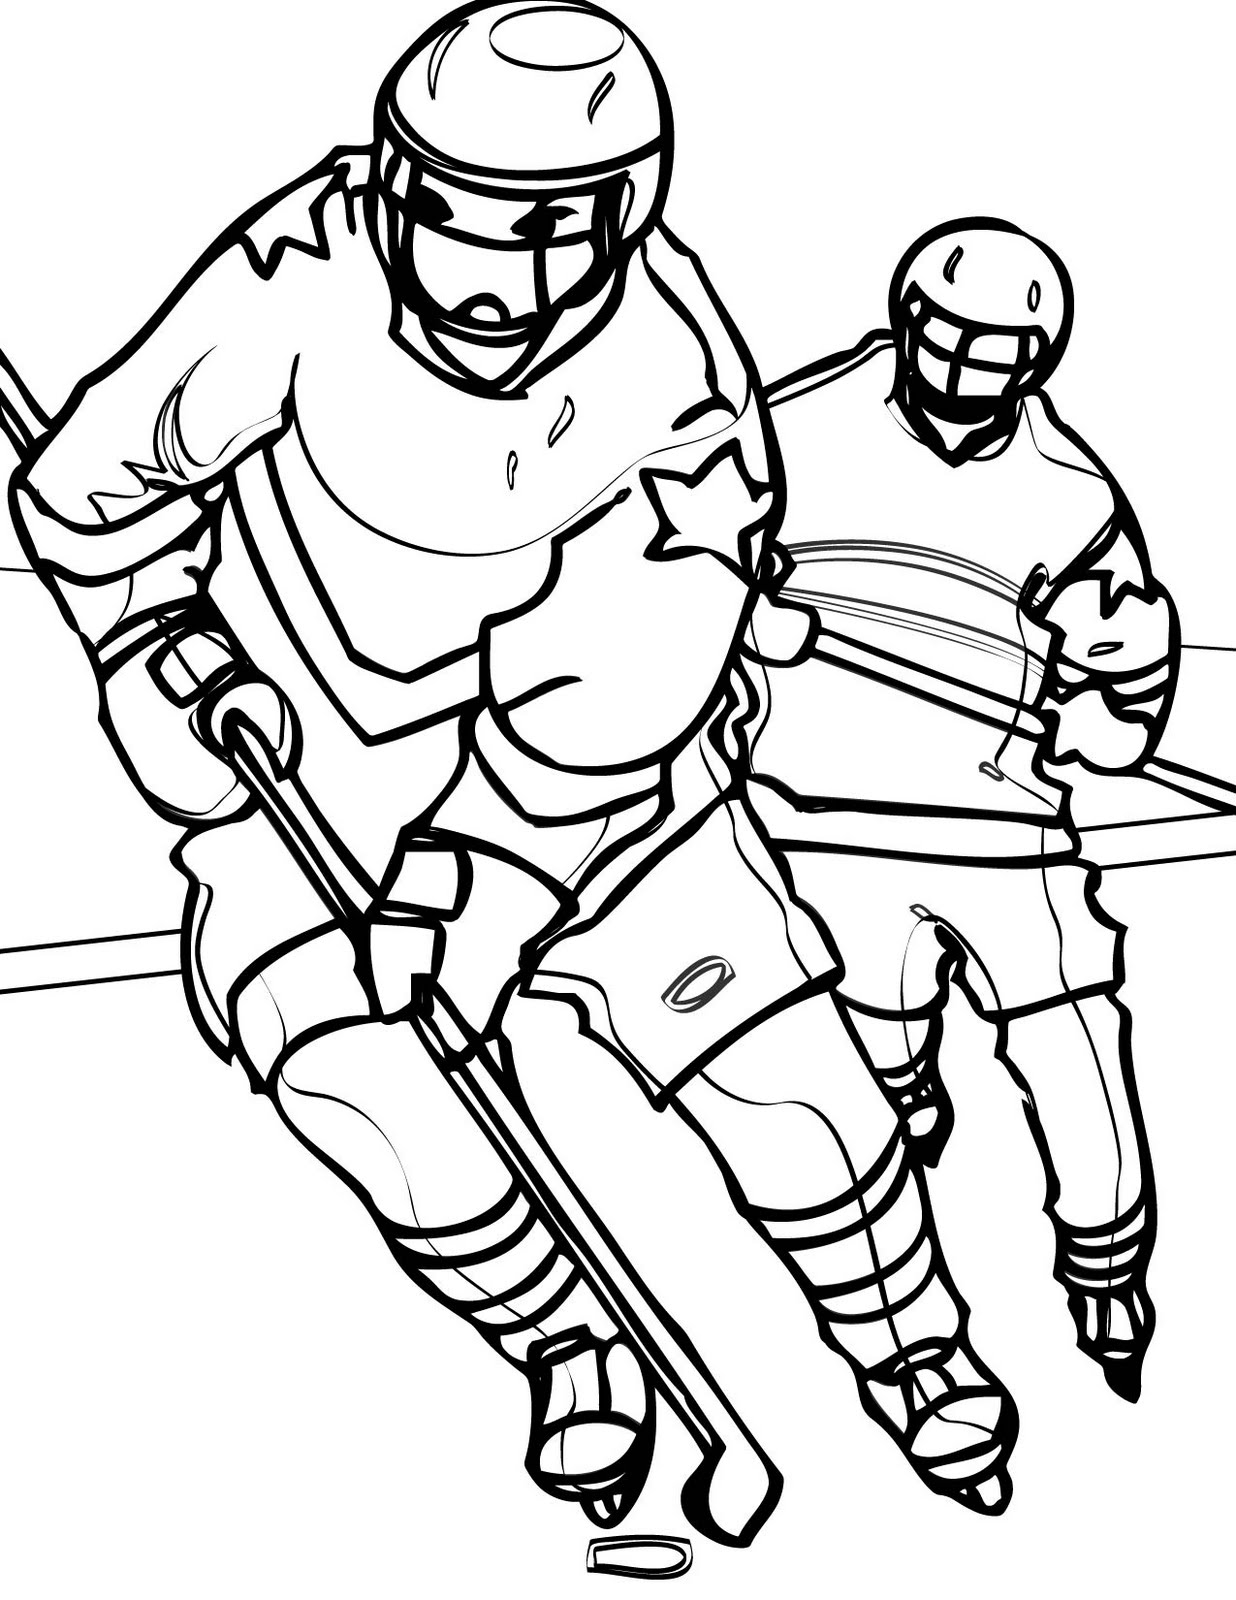 coloring hockey pages hockey goalie drawing at getdrawings free download coloring pages hockey